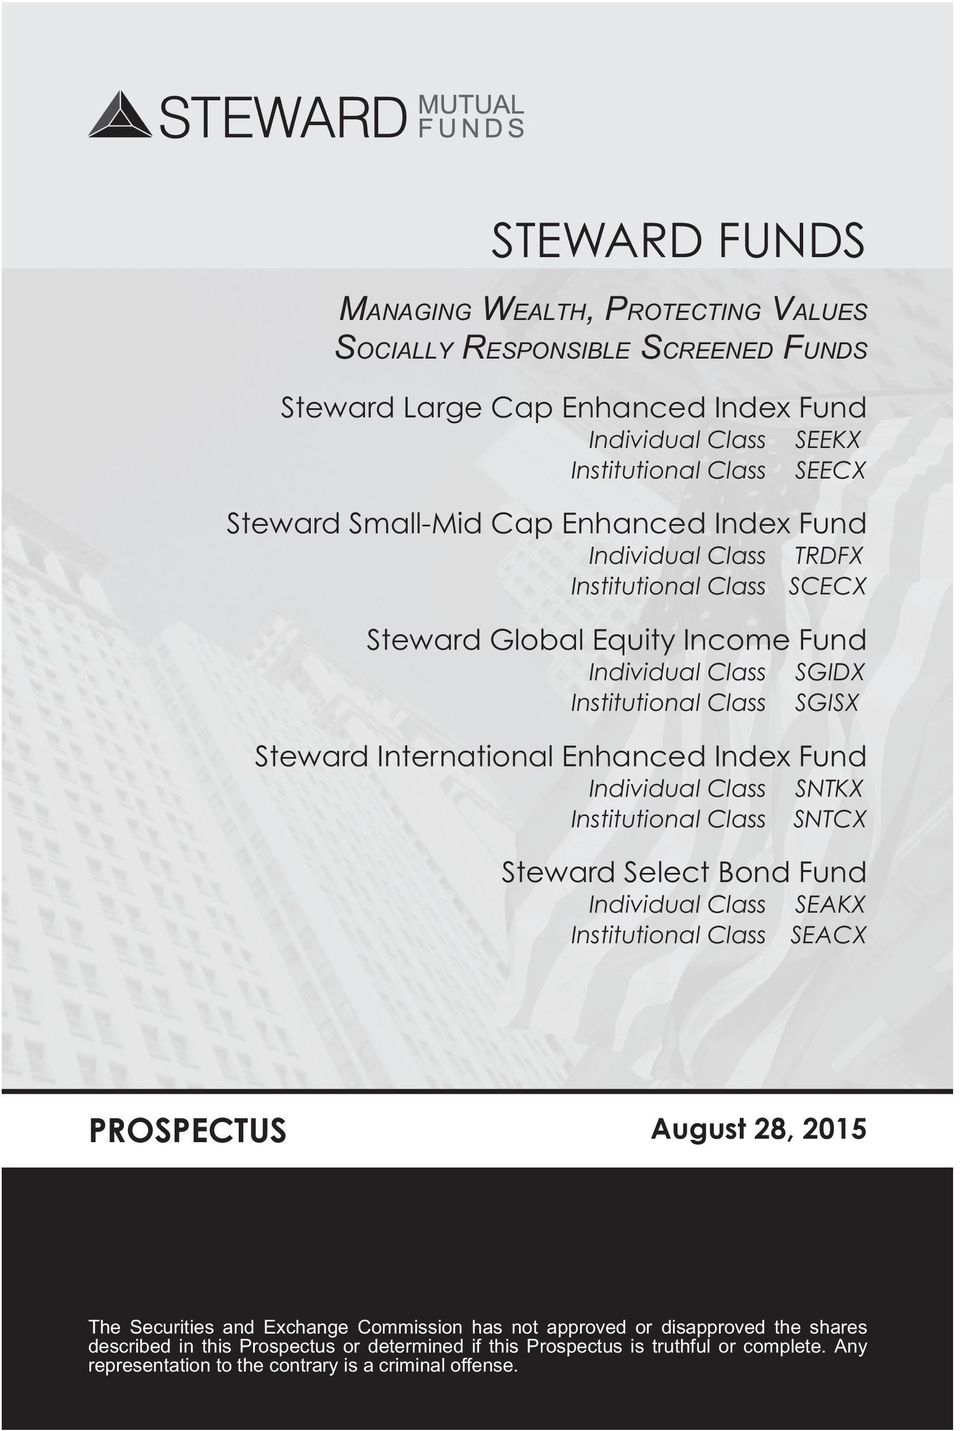 Index Fund Individual Class SNTKX Institutional Class SNTCX Steward Select Bond Fund Individual Class SEAKX Institutional Class SEACX PROSPECTUS August 28, 2015 The Securities and Exchange